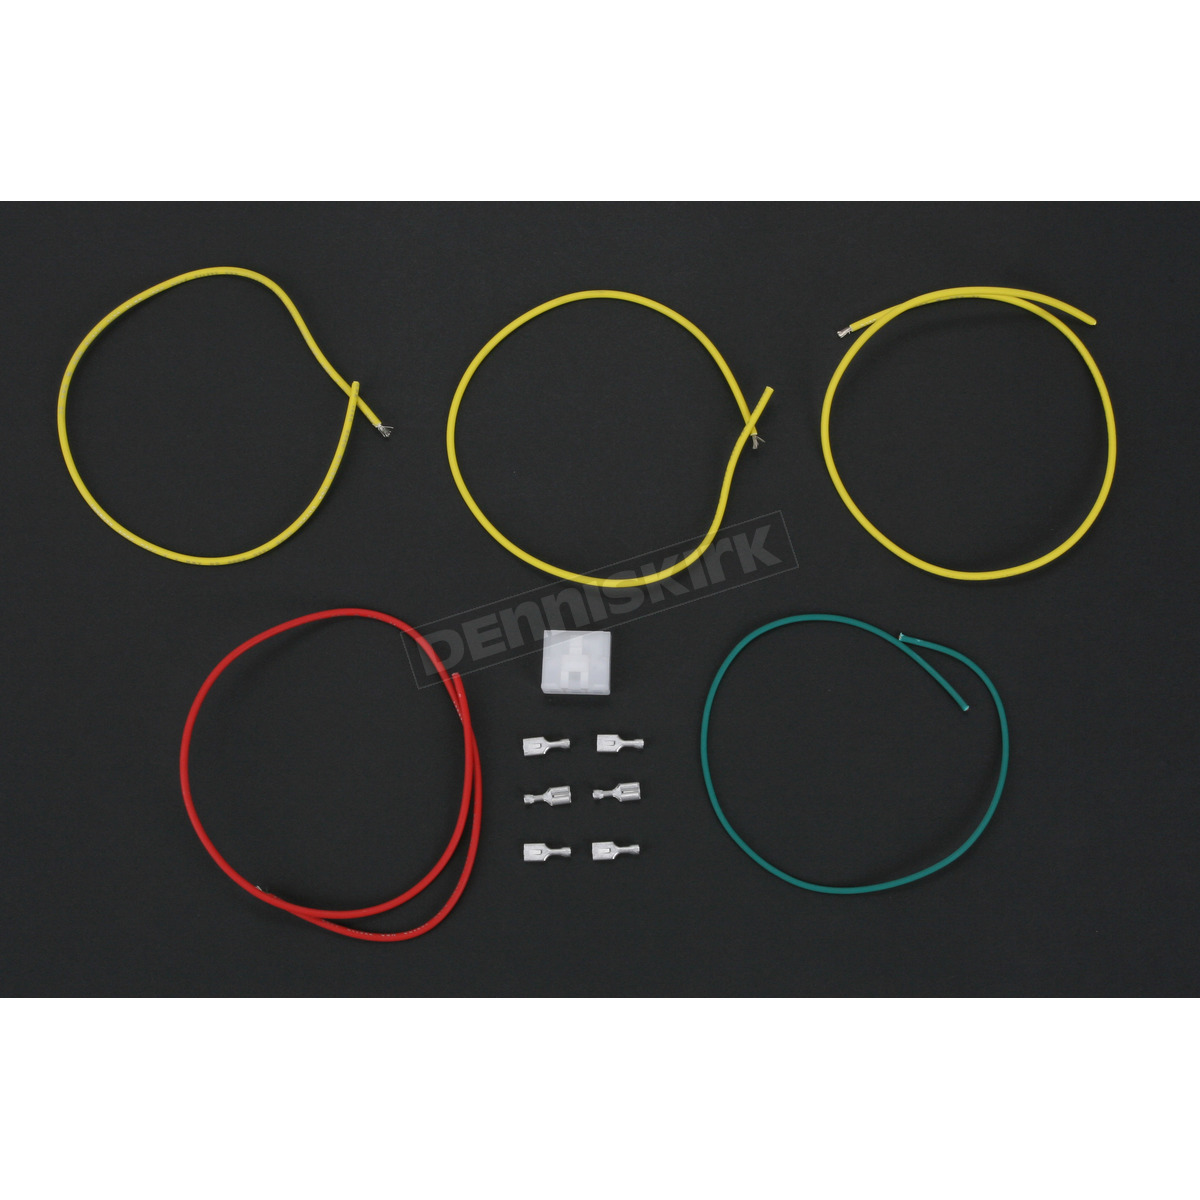 Ricks Motorsport Electrics Regulator Rectifier Wiring Harness Motorcycle Diagram Connector Kit 11 103